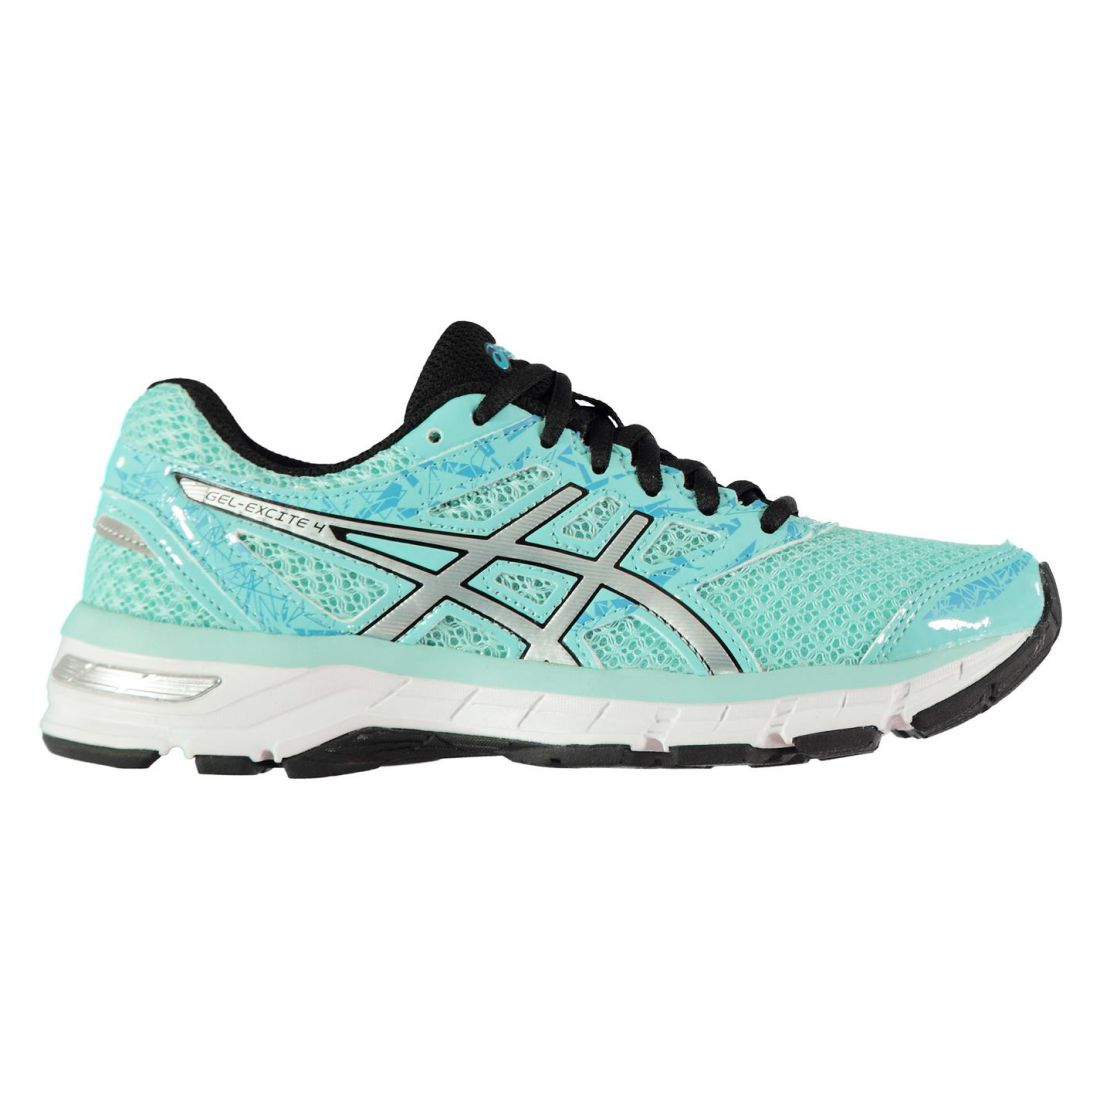 Asics Gel Excite 4 Running Trainers Road Shoes Womens  b49b2c68f35a8